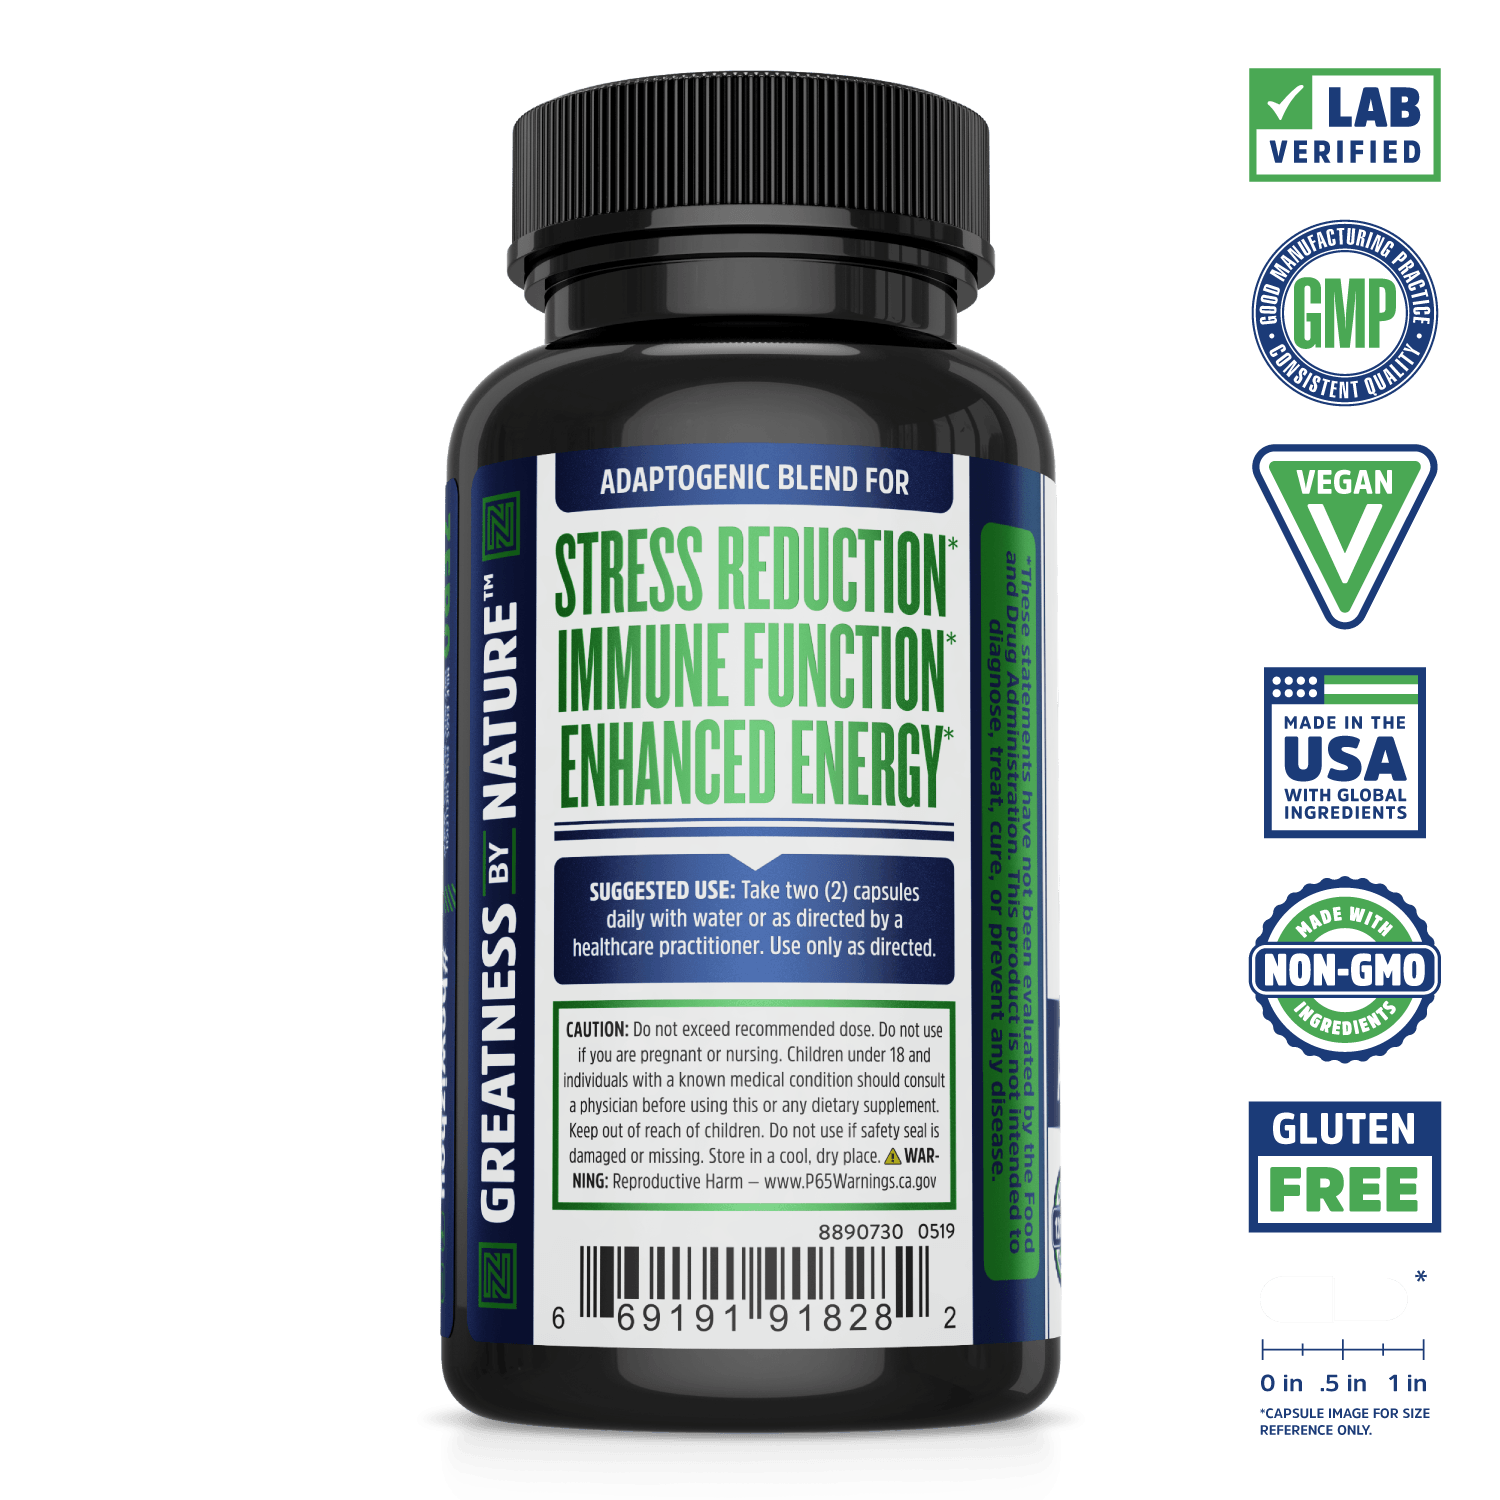 Zhou Nutrition Ashwagandha Supplement. Lab verified, good manufacturing practices, vegan, made with non-GMO ingredients, made in the USA with global ingredients, gluten free.